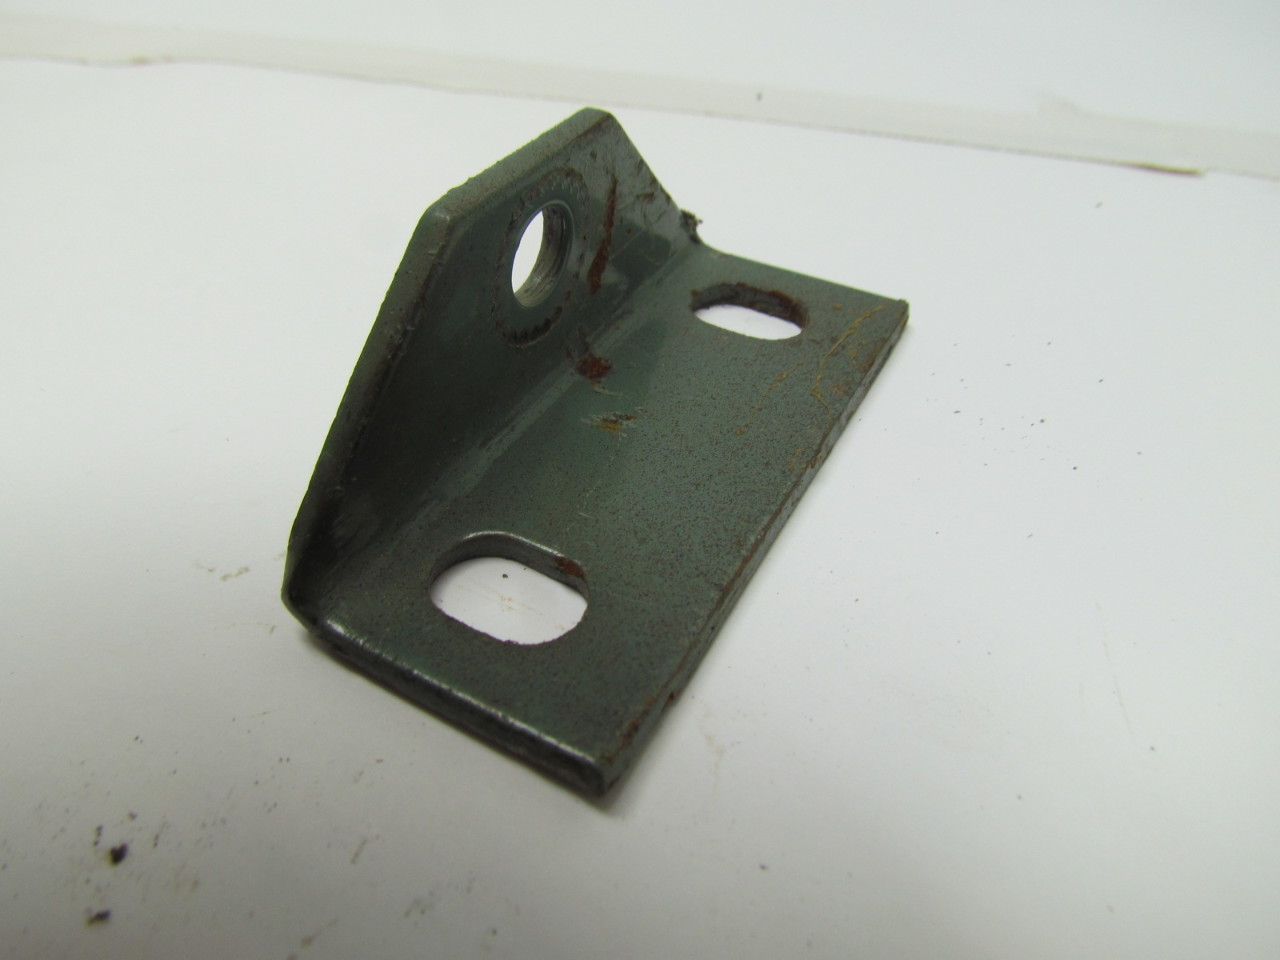 Conveyor Replacement Parts : Hytrol conveyor replacement repair part small angle